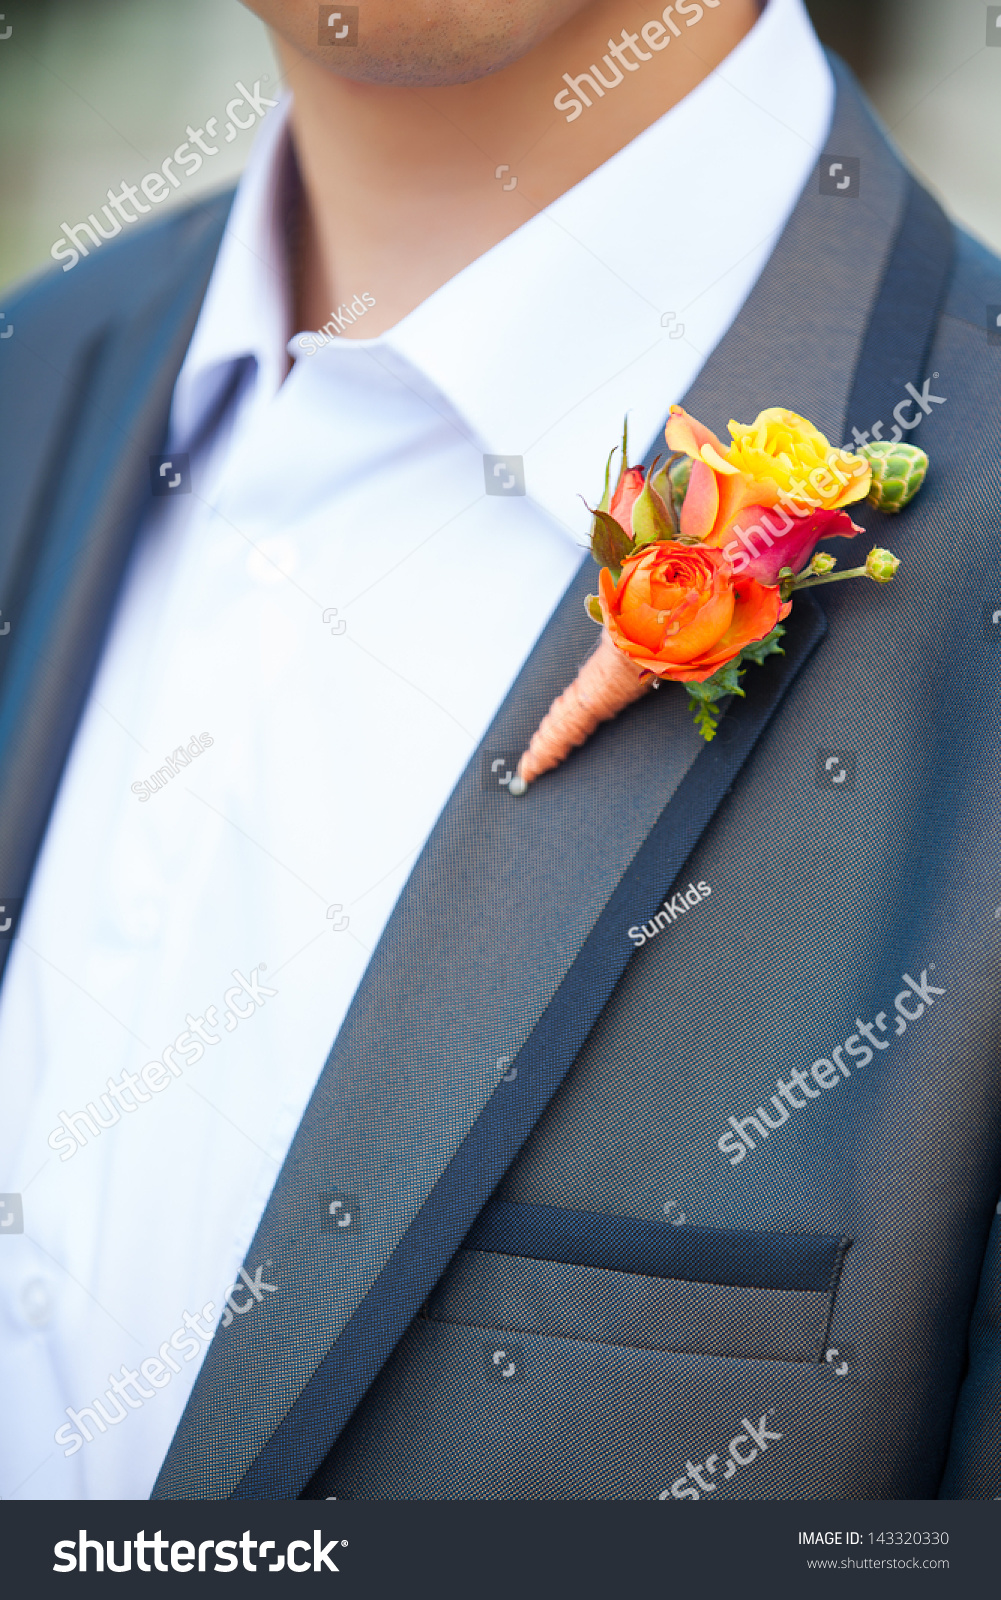 Boutonniere groom - a symbol of celebration